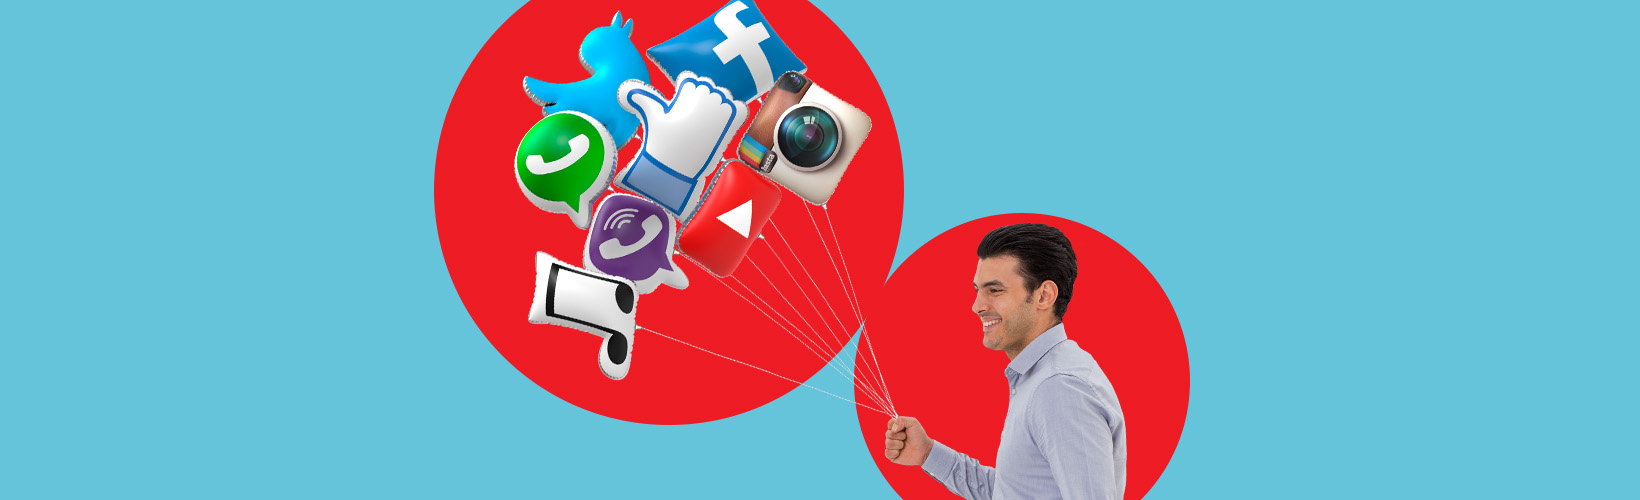 Social Media Celebrities from the Region 'Enjoy The Internet' in New Ooredoo Advertising Campaign